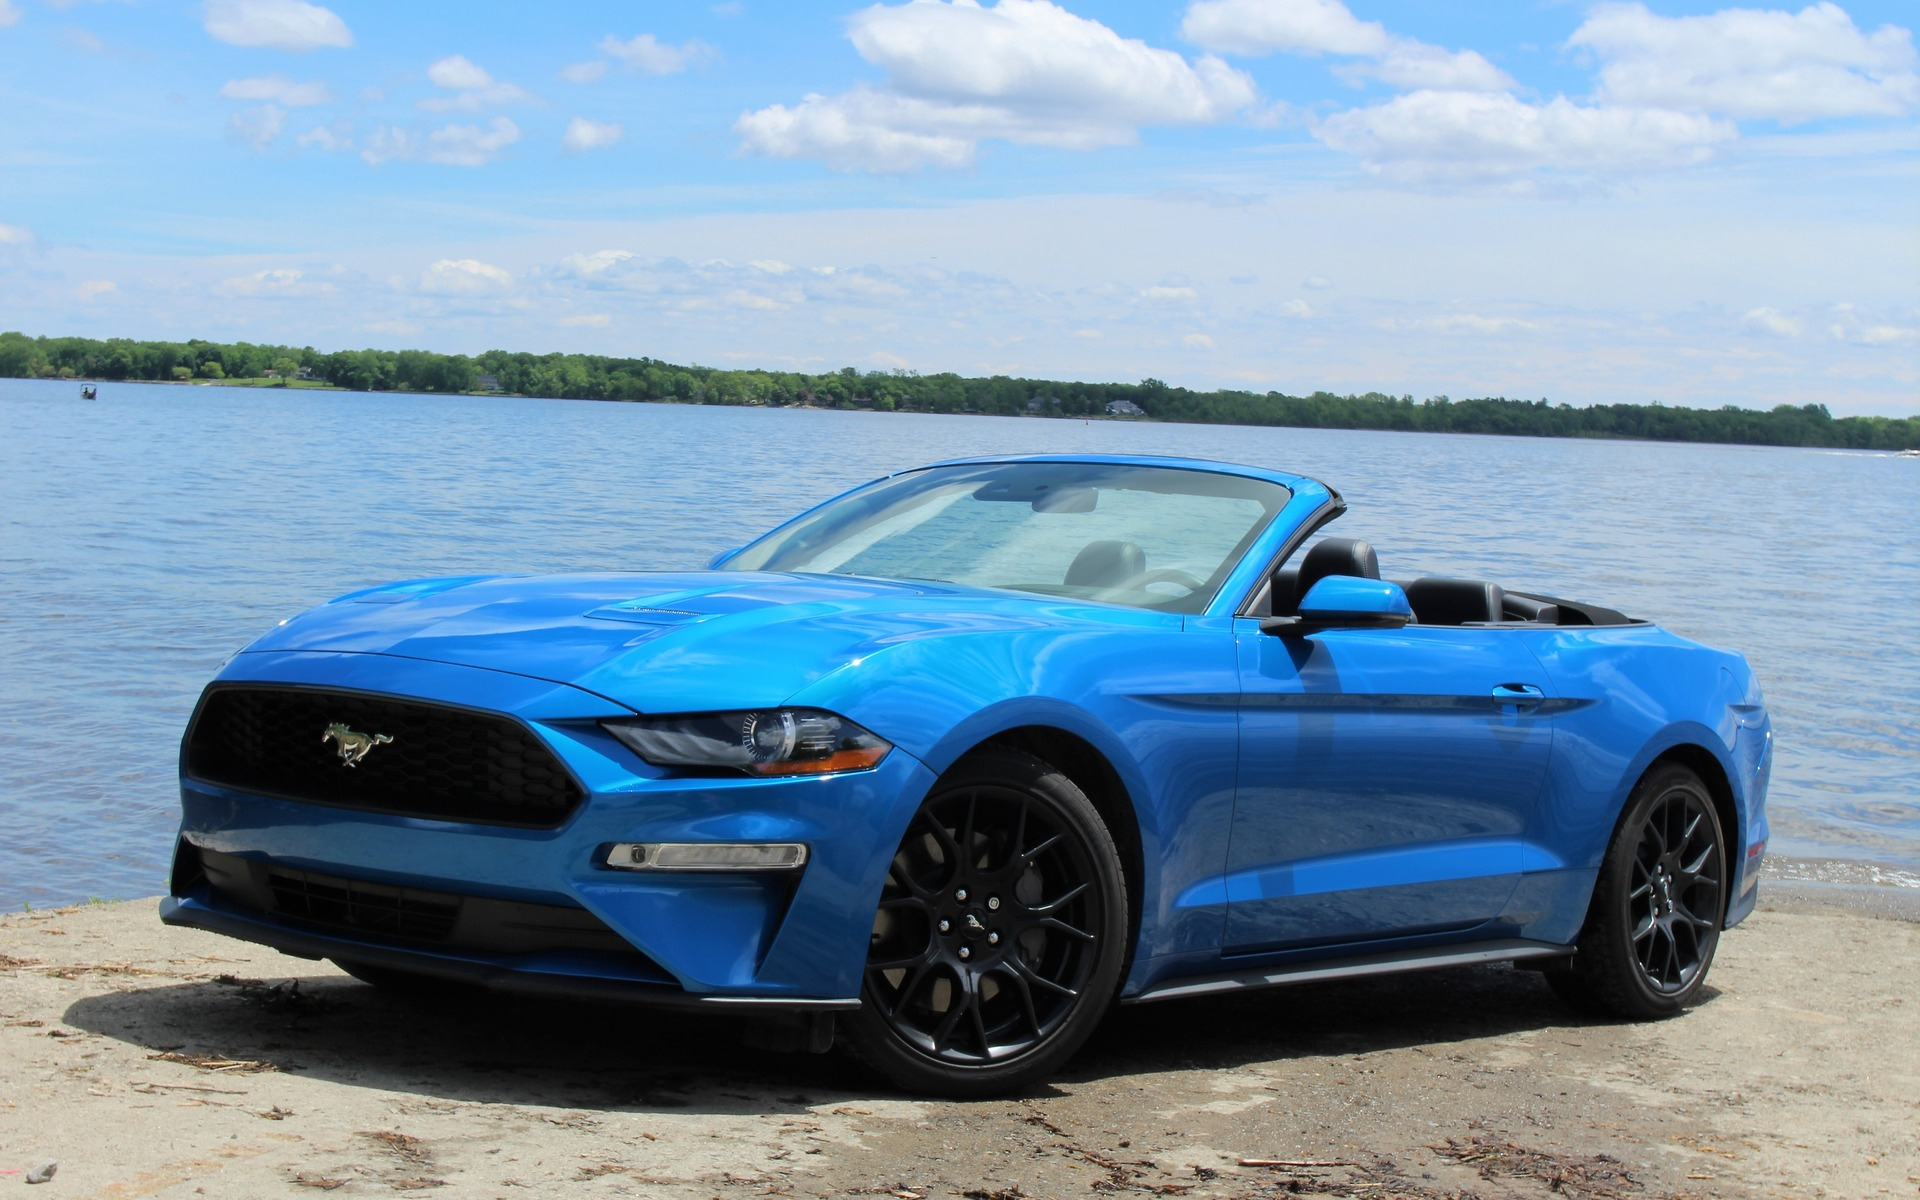 Ford Mustang Ecoboost 2019 : Un Autre Type De Cheval - Guide